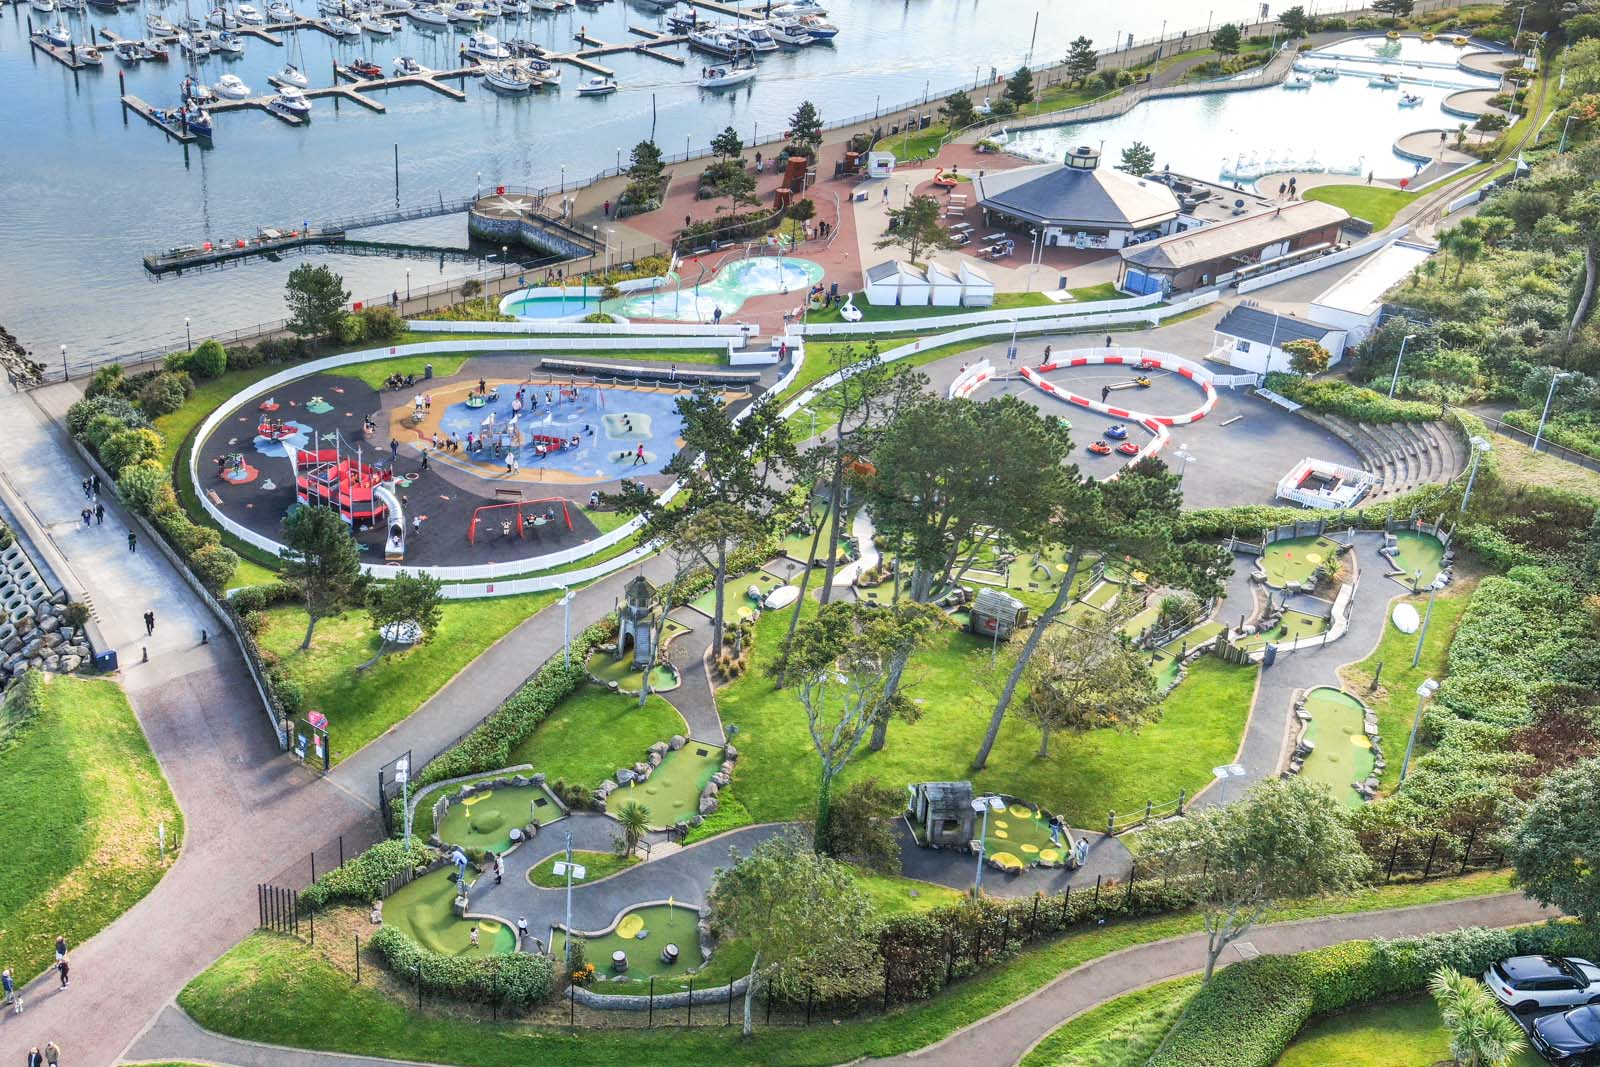 Aerial photo of Bangor Marina and Pickie Fun Park by Bout Yeh drone photography and video production services, Belfast and Northern Ireland - photo 0149-2